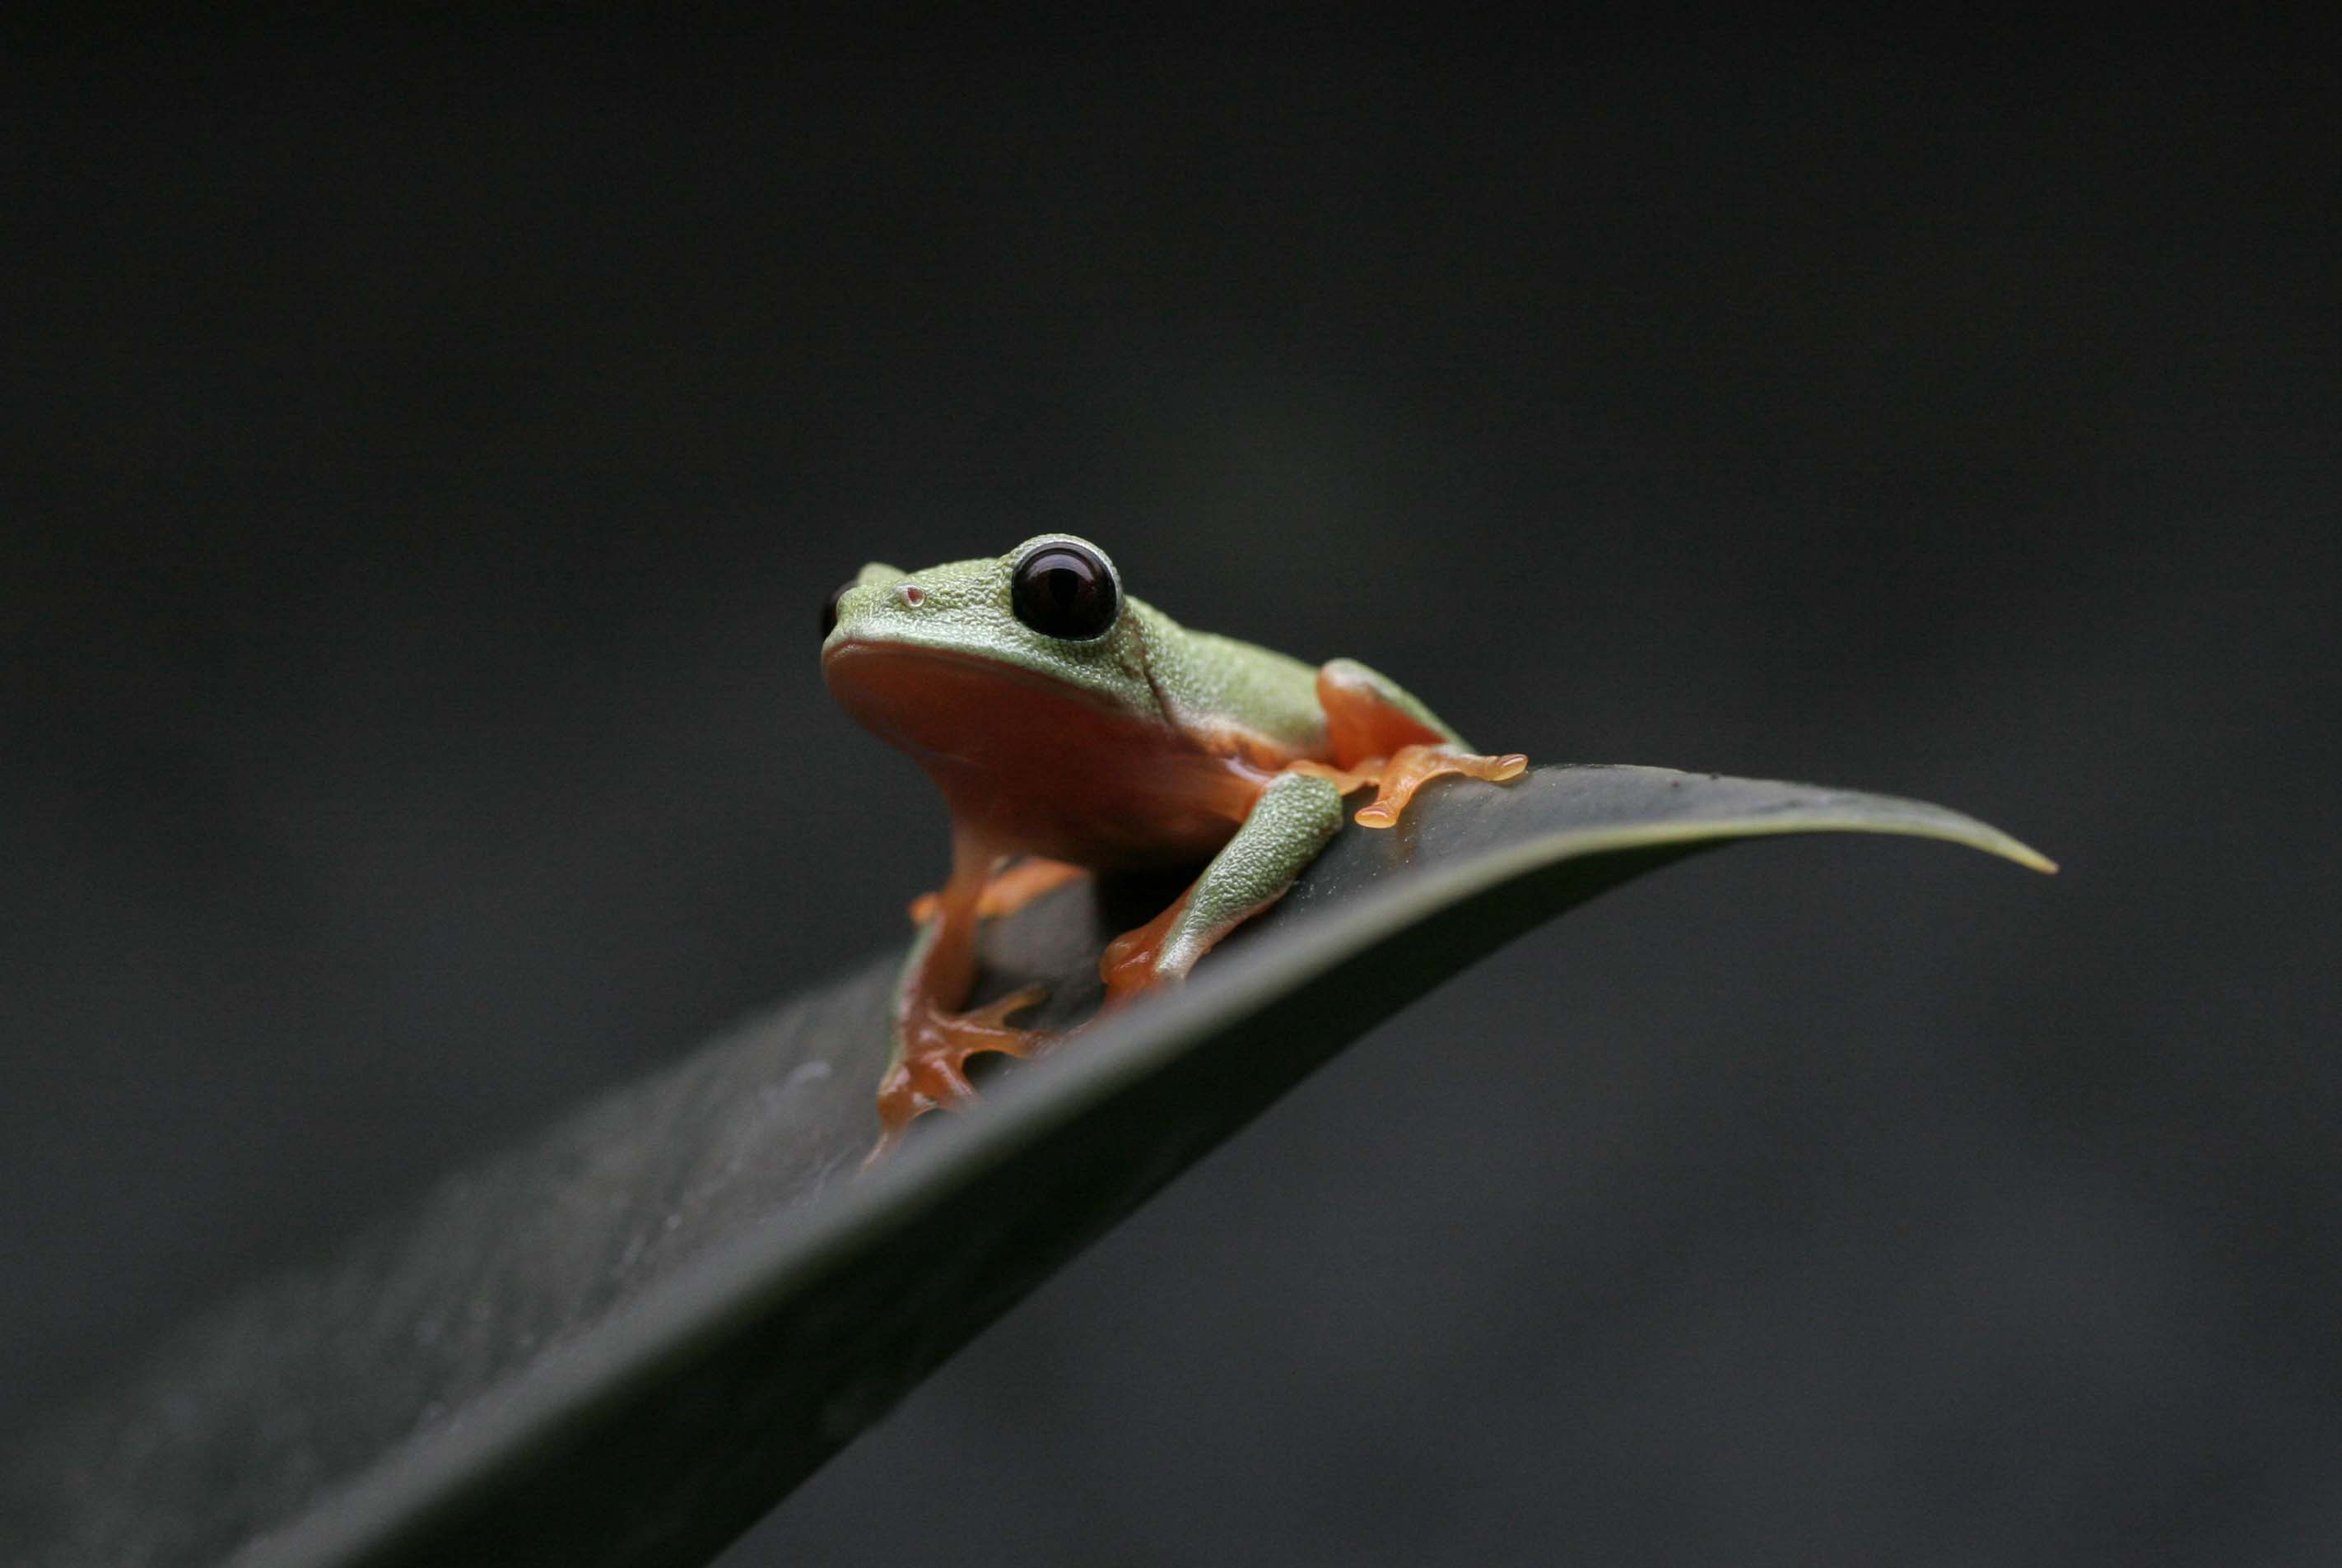 Morelet&#039;s tree frog (Agalychnis moreletii)